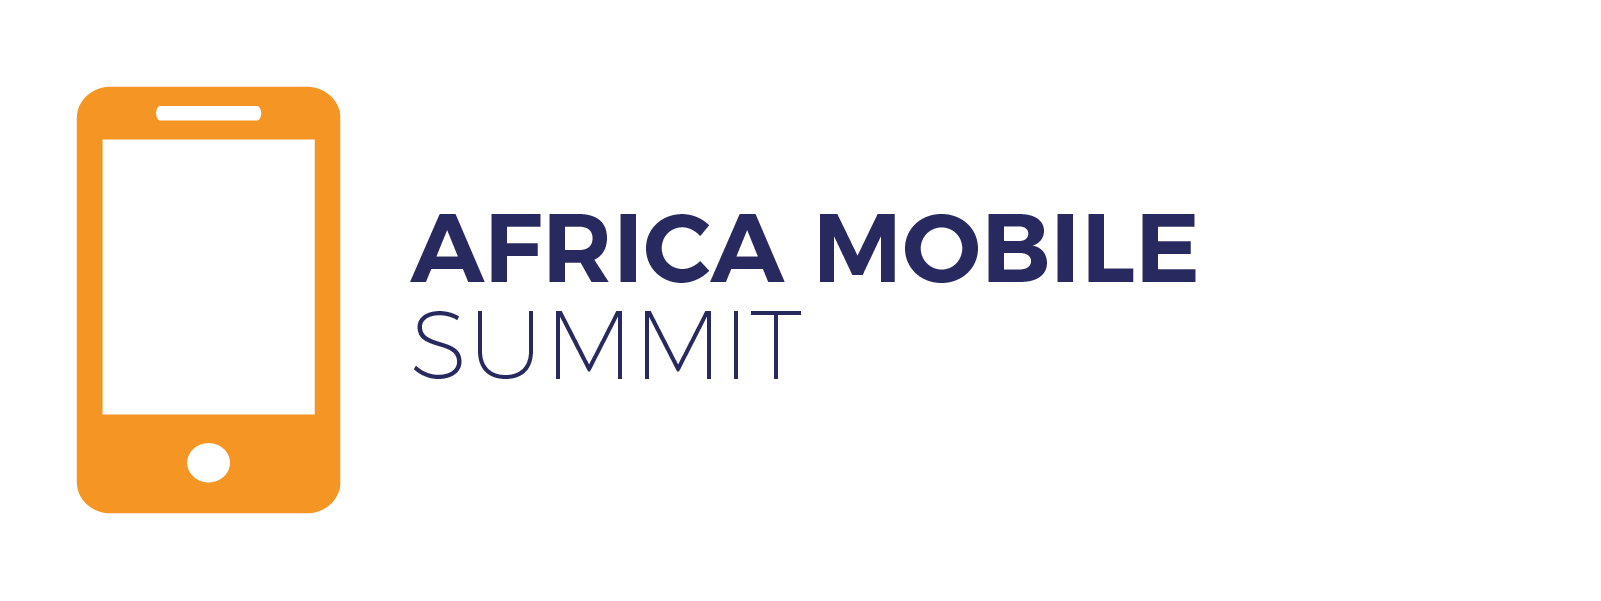 The Africa Mobile Summit will deliver a cross-sectional view of new technologies, solutions and opportunities across the African mobile and digital landscape. Africa Tech Summit